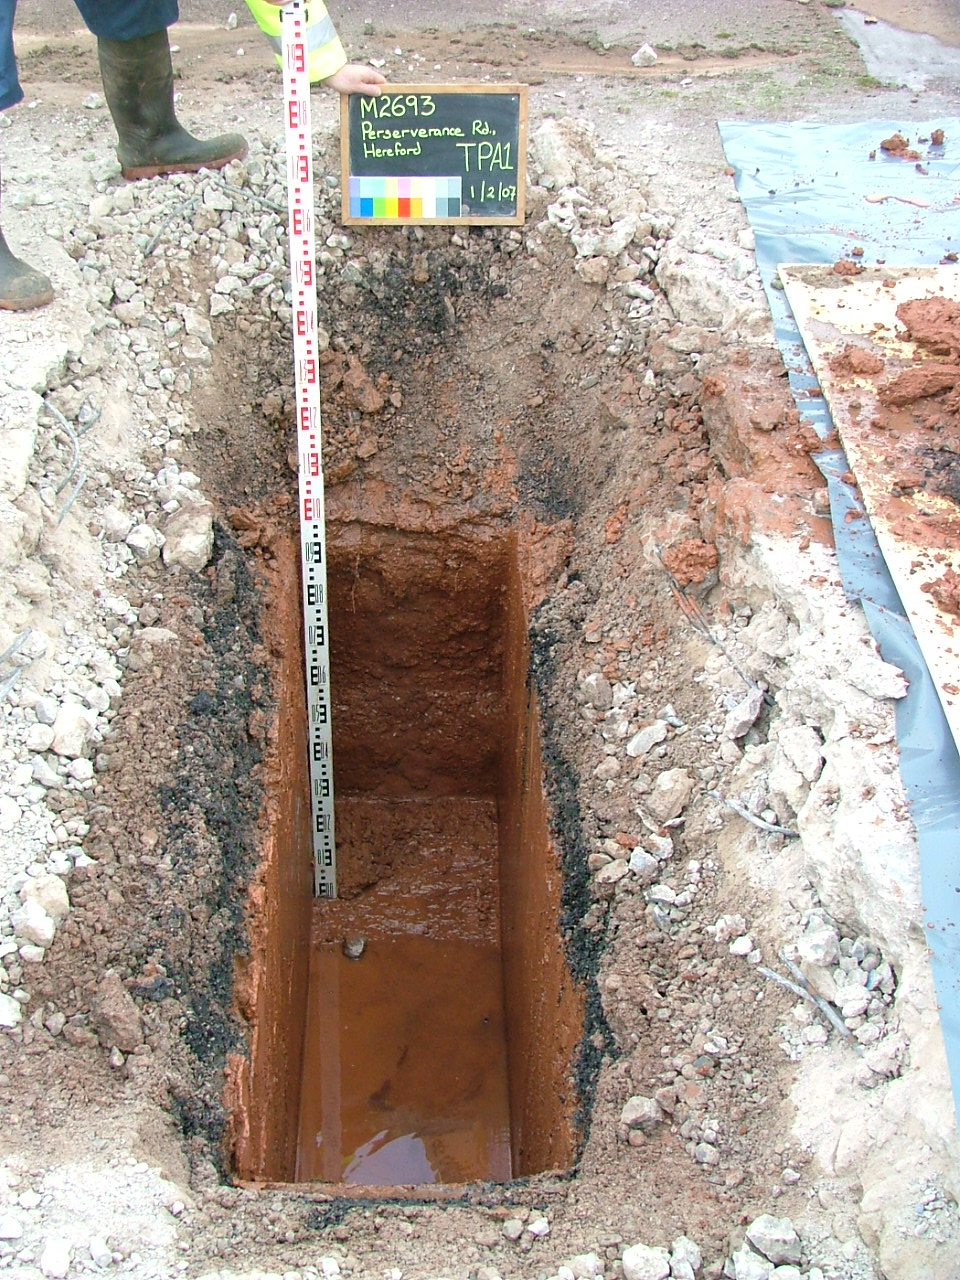 Machine Excavated Trial Pit in Hereford, Herefordshire